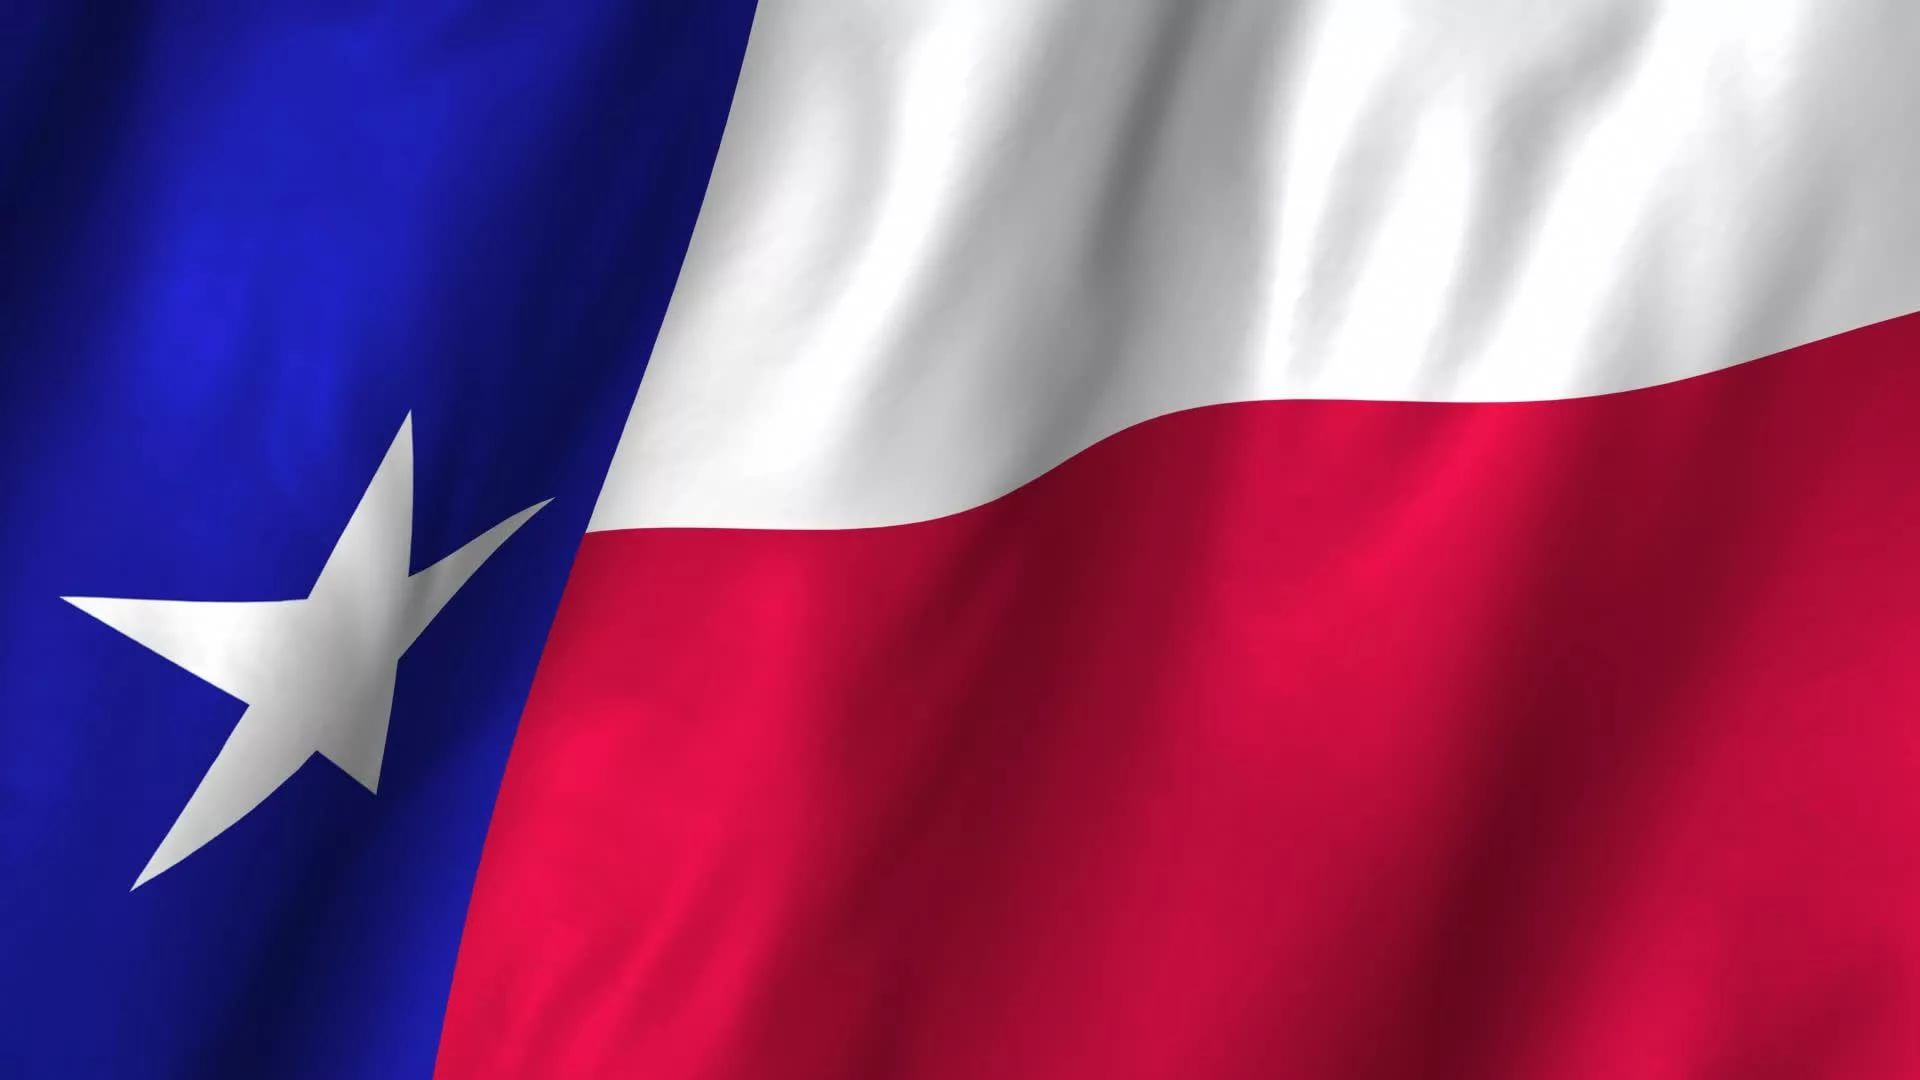 Texas Flag wallpaper image hd